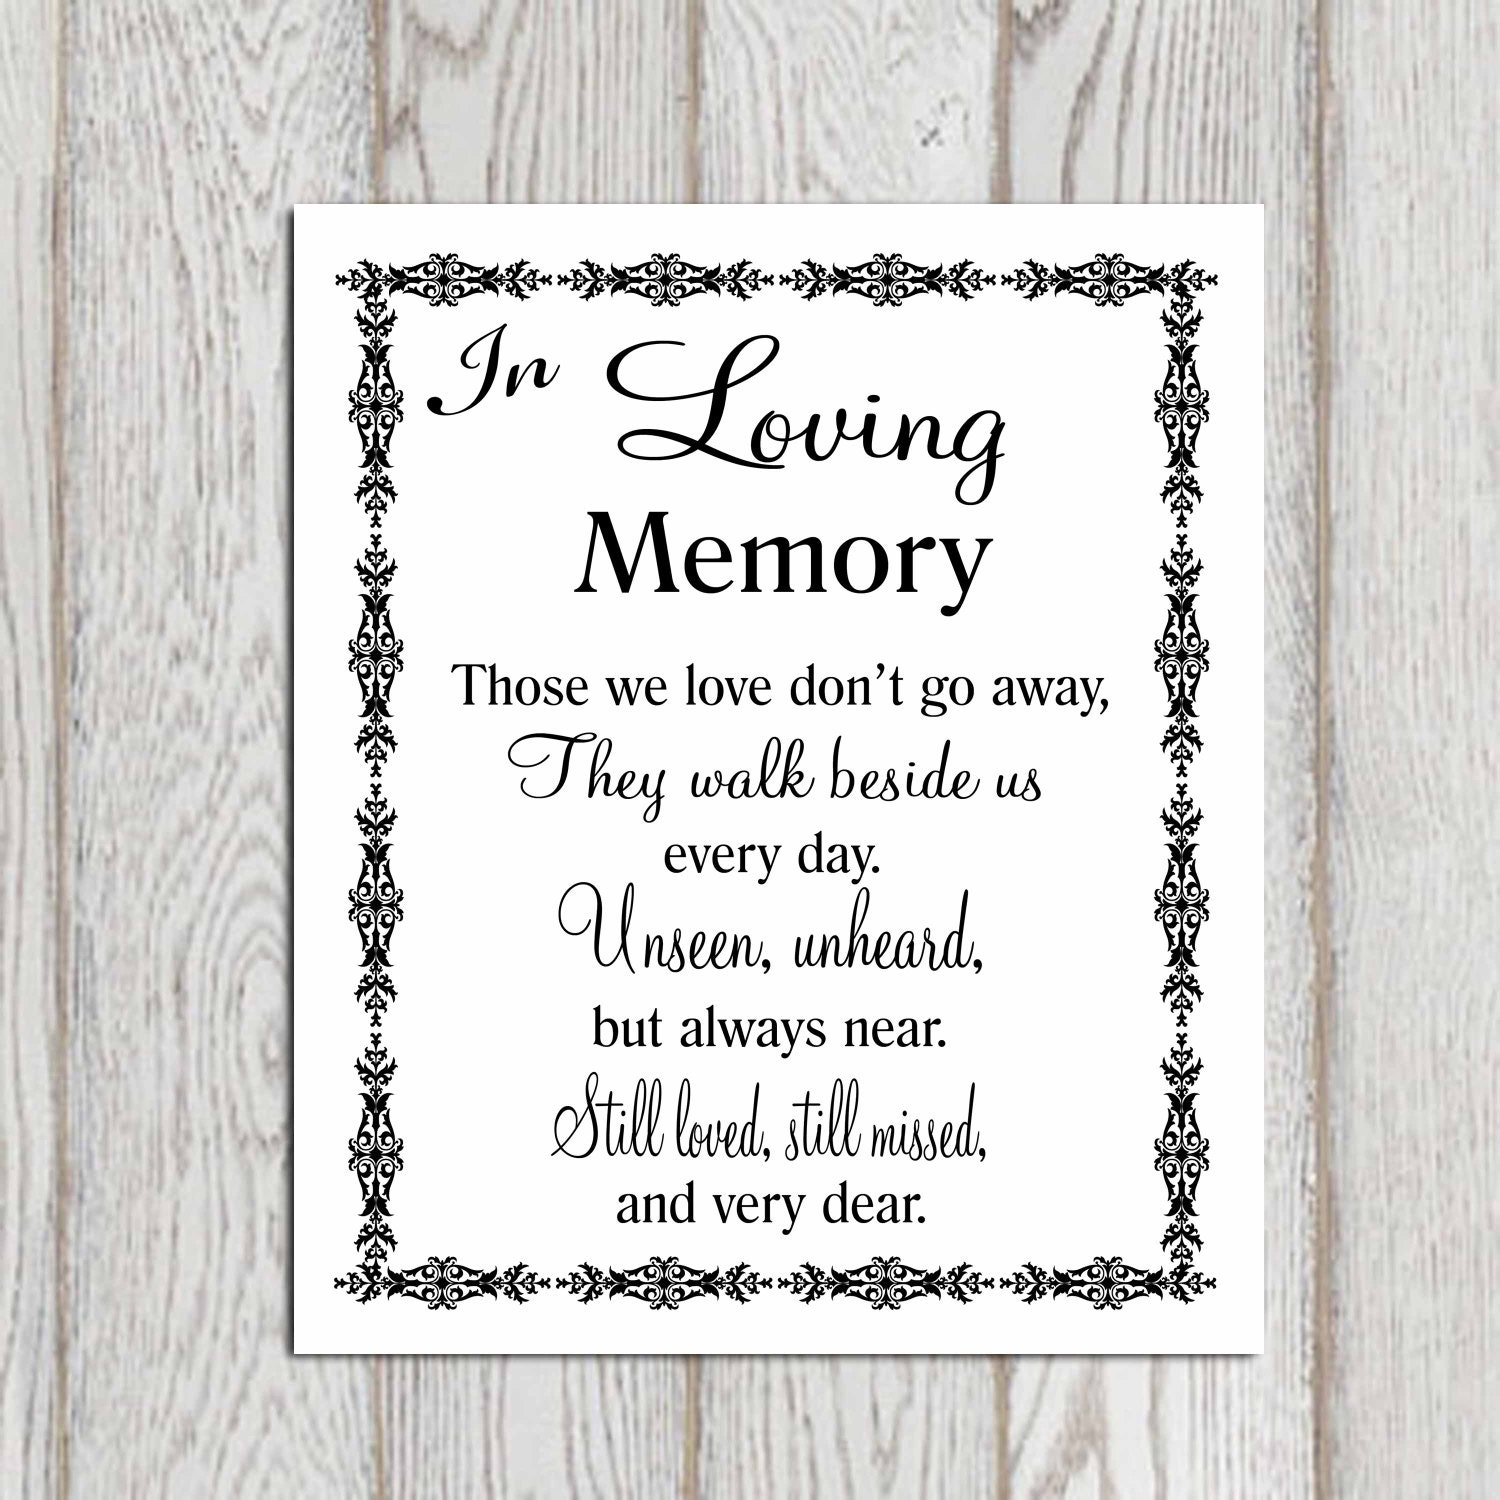 a description of the place harlems mum would have loved Read inspiring messages, quotes, and sayings about the grief caused by the death of a mother, whether yours or that of someone you know.